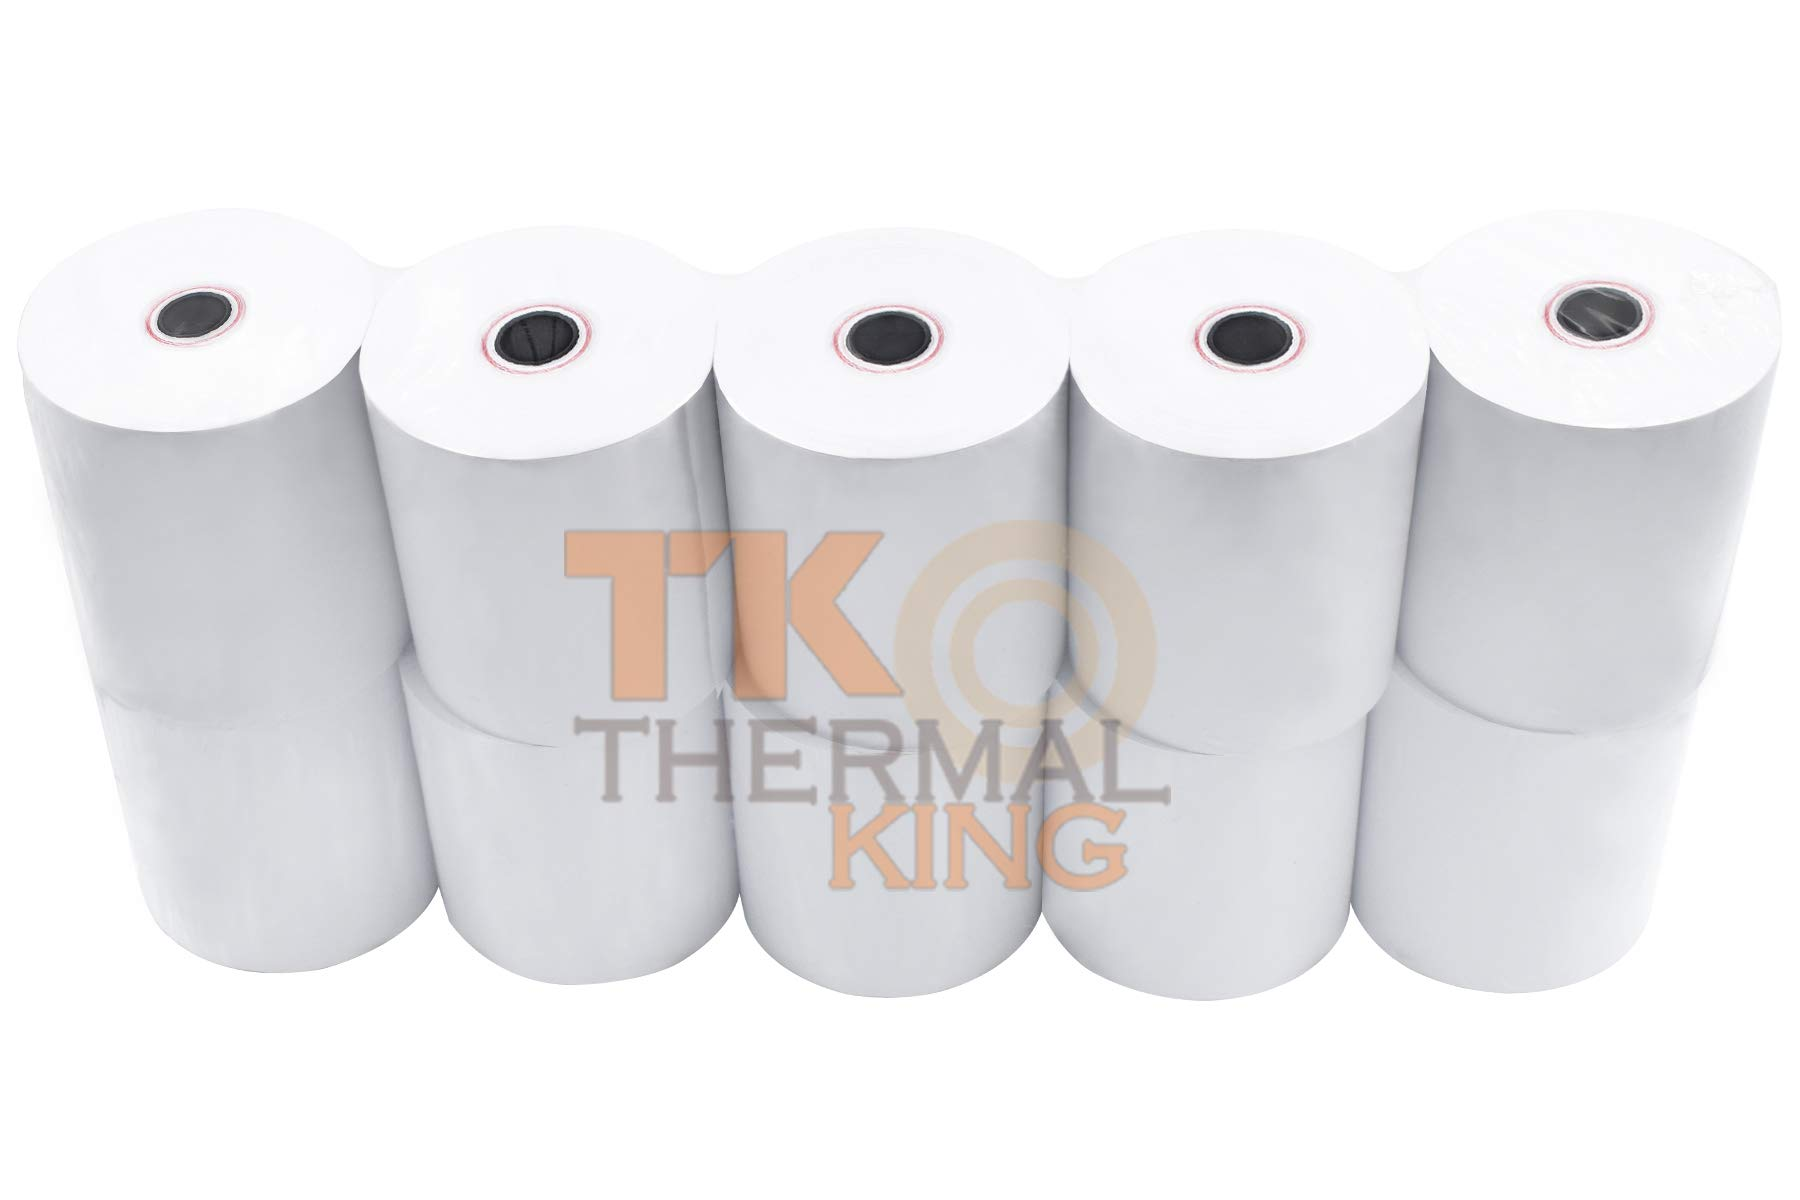 Thermal King, Point-of-Sale Thermal Paper Rolls, 3 1/8'' x 230', 10 Rolls by Thermal King